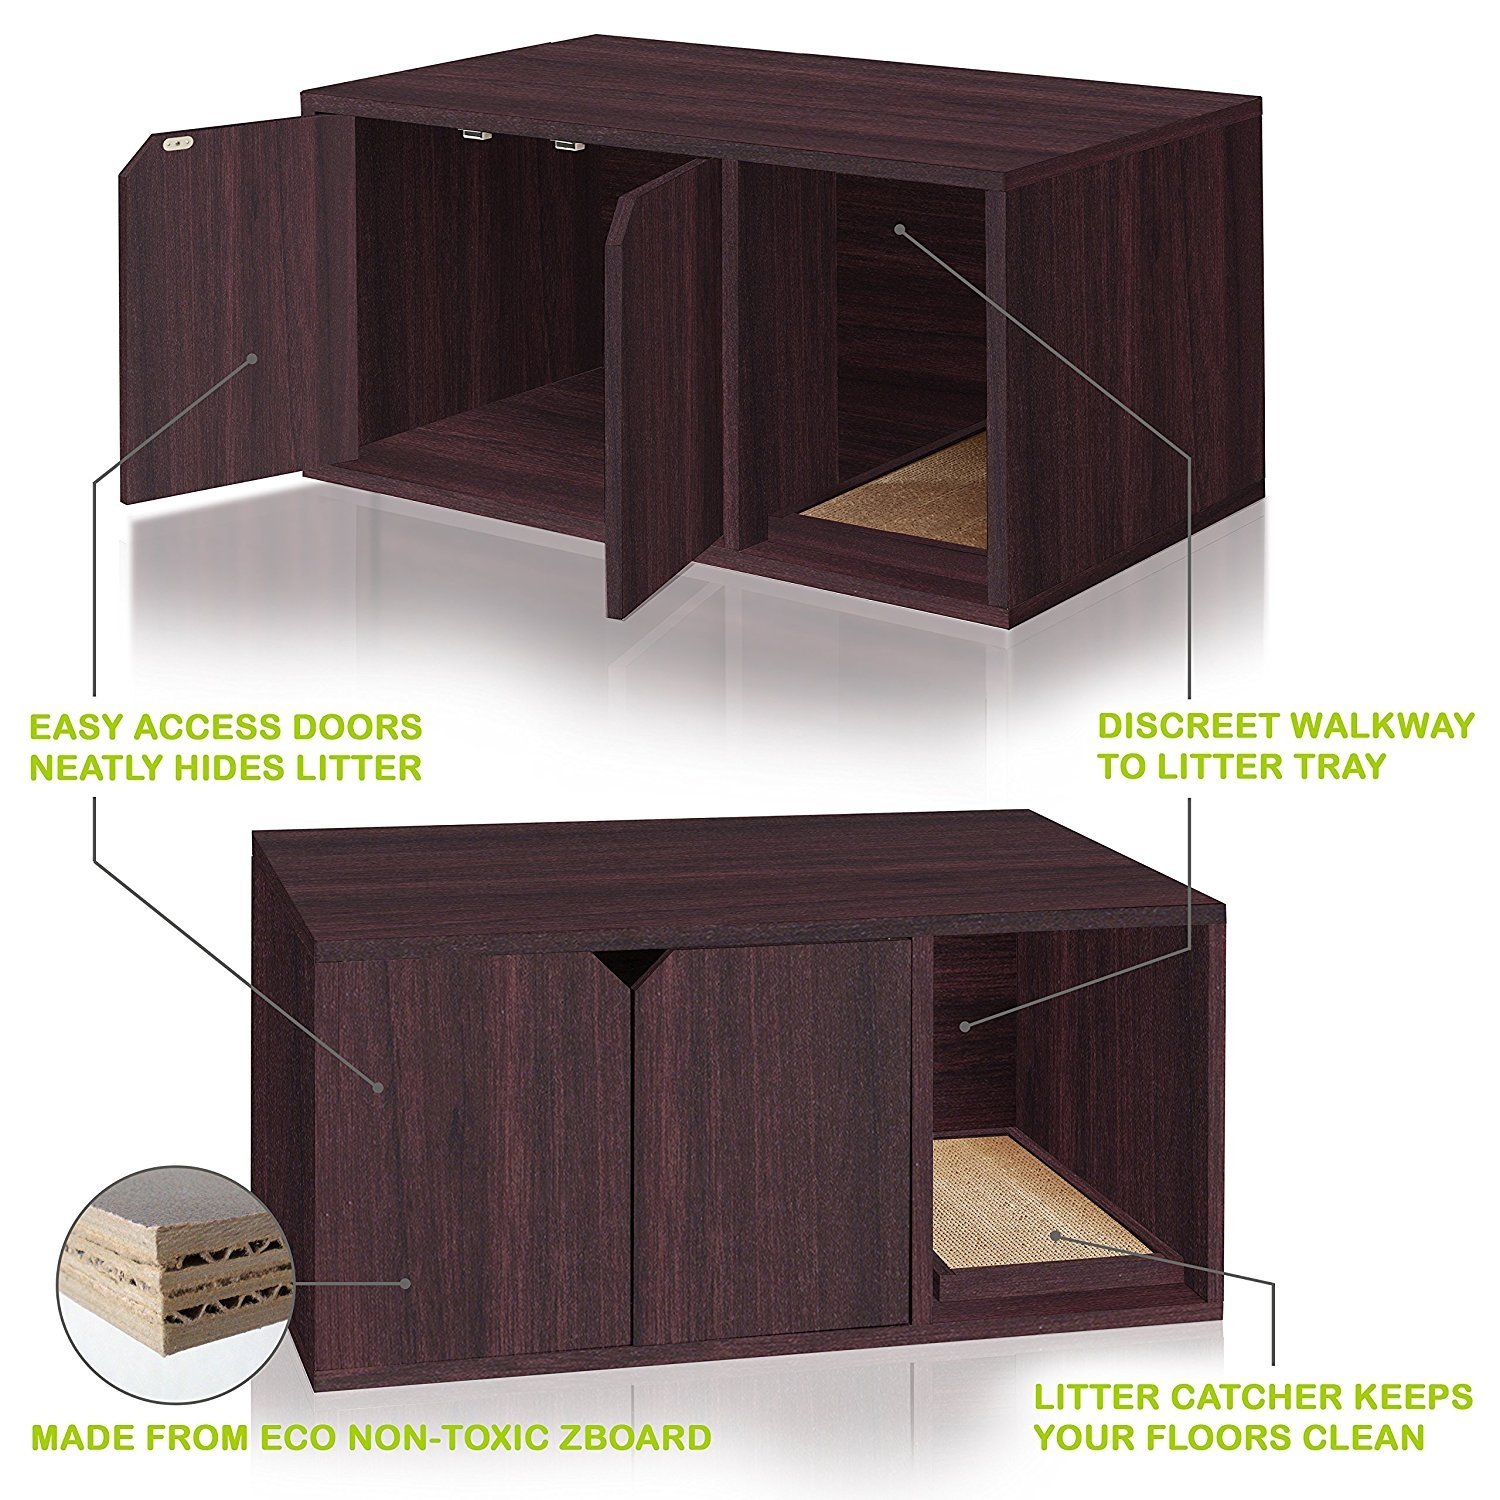 Way basics eco friendly modern cat litter box furniture made from sustainable non toxic zboard paperboard walmart com